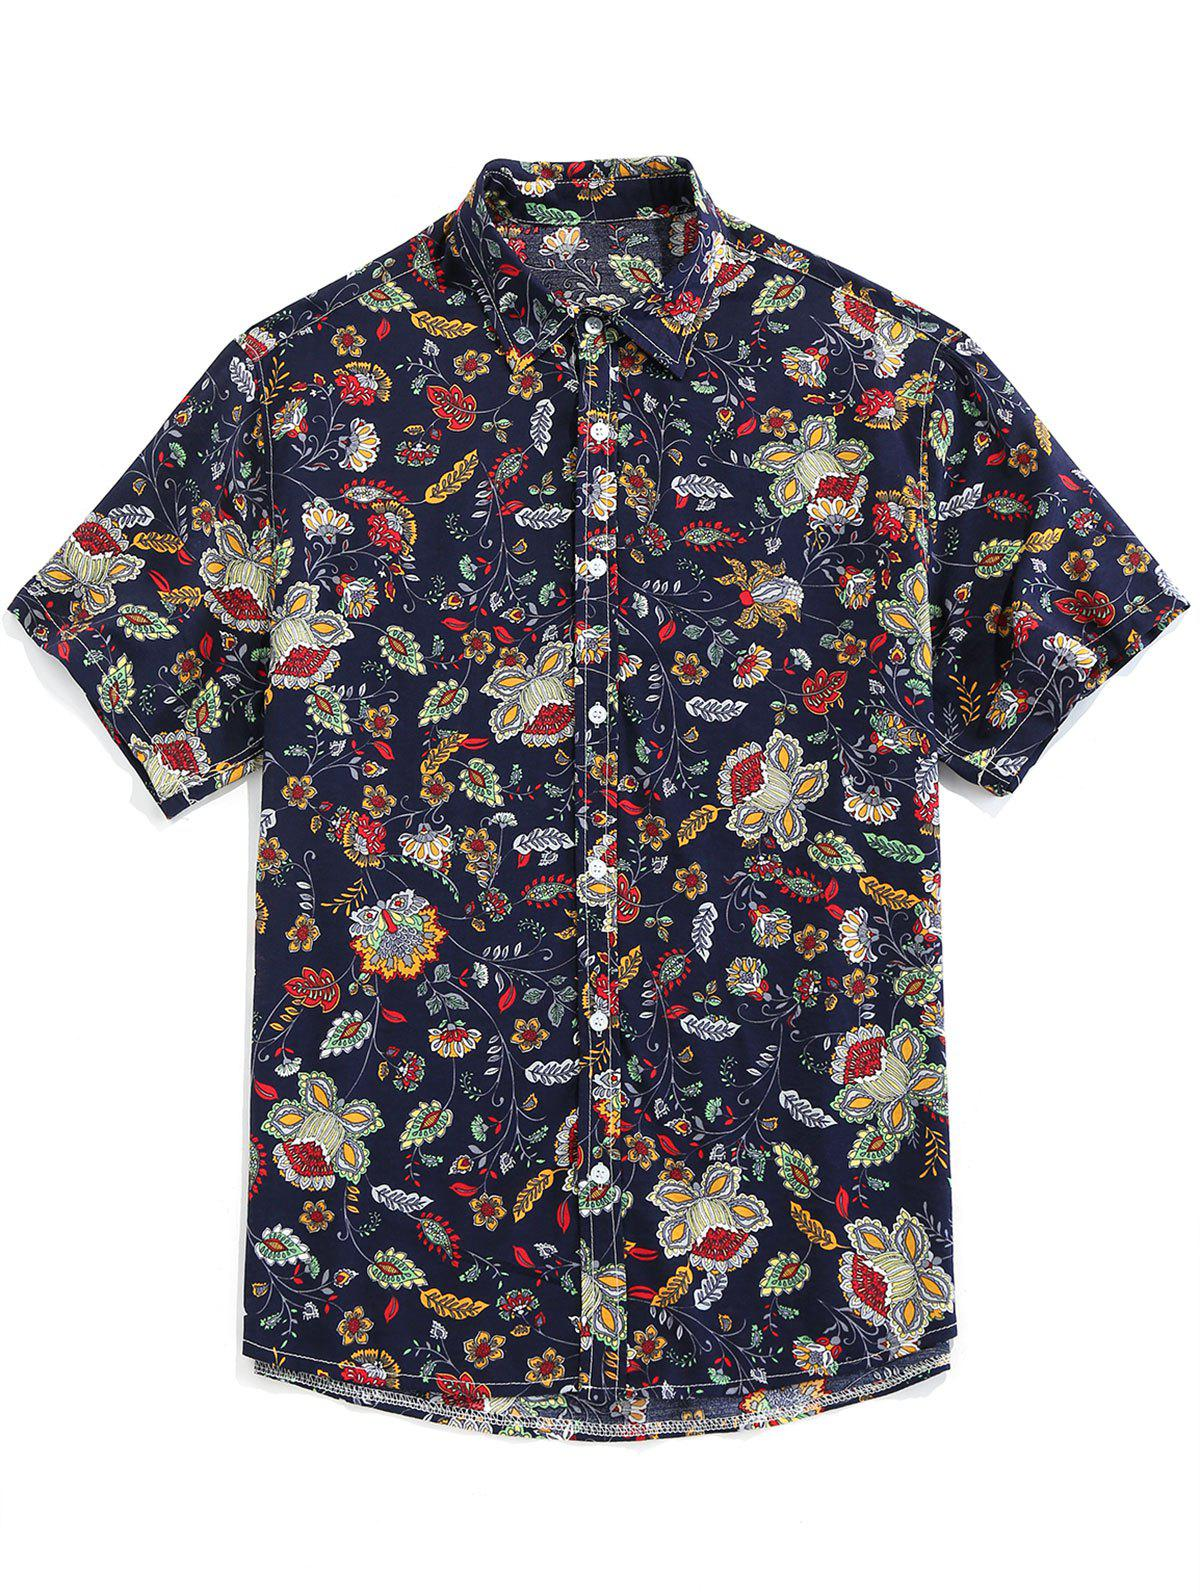 Unique Floral Print Button Up Vintage Shirt